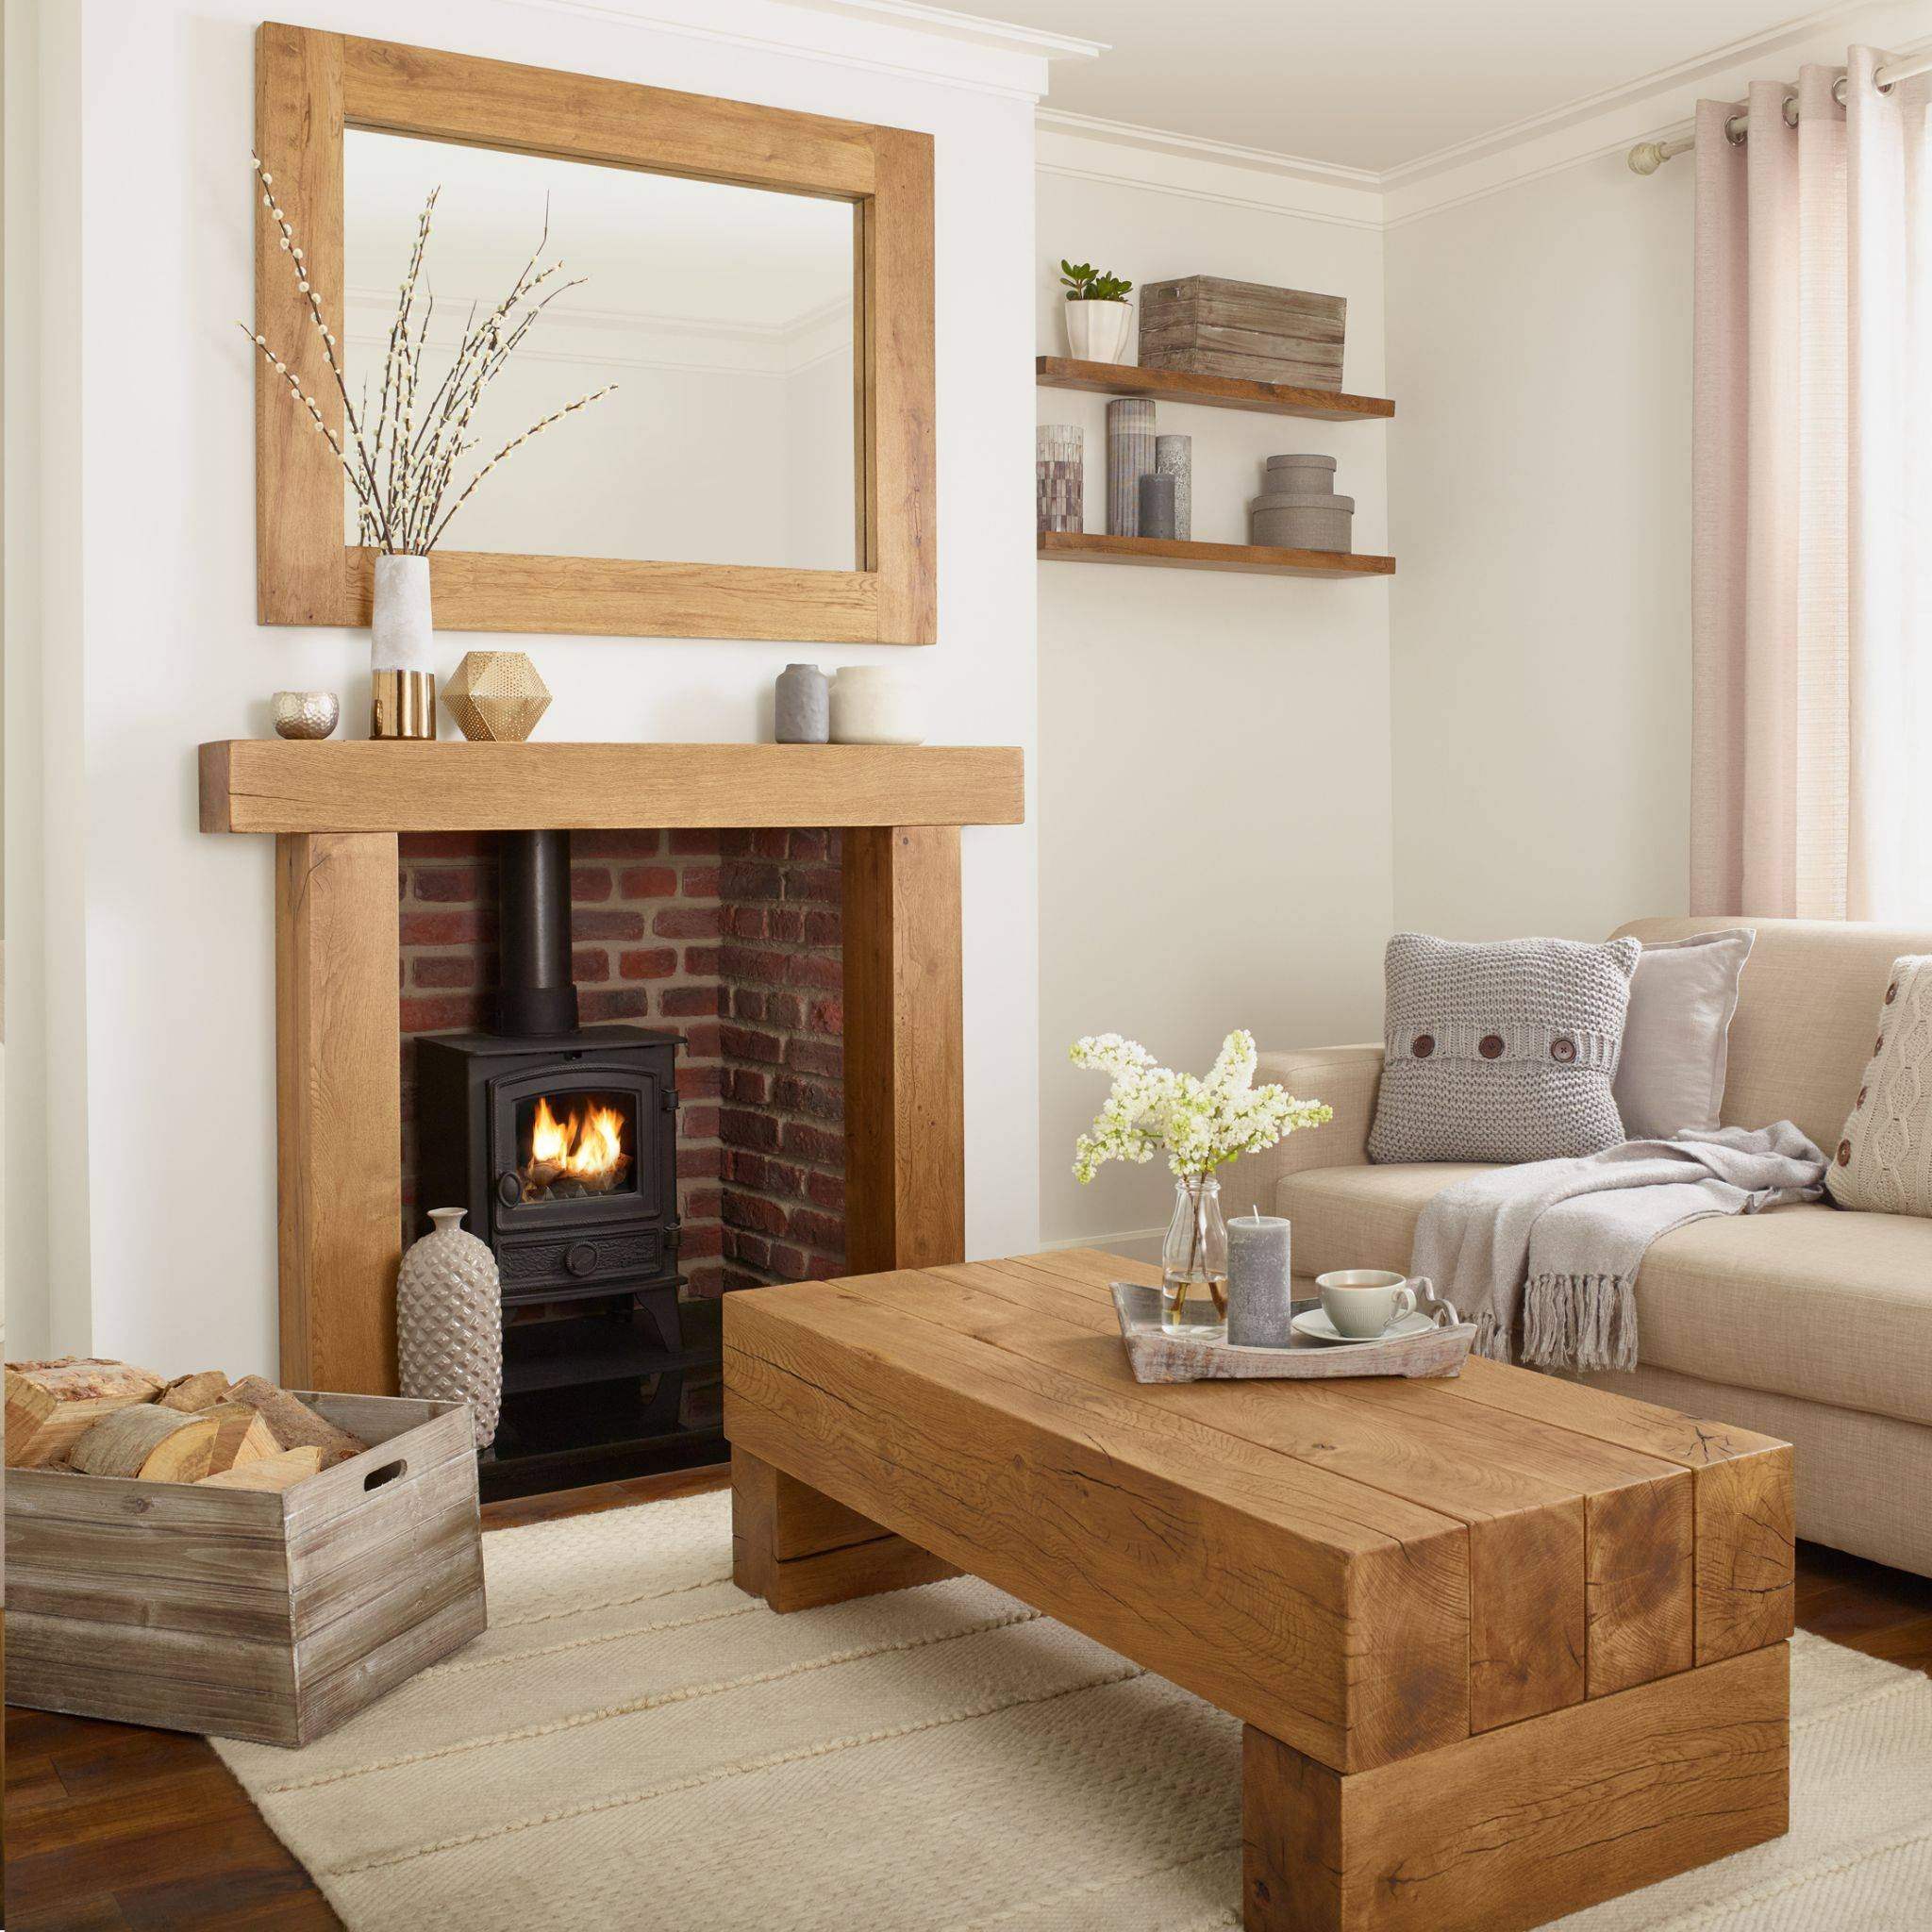 Oak Coffee Table – Banbury Solid French Rustic Beam In Solid Oak Beam Coffee Table (View 9 of 15)